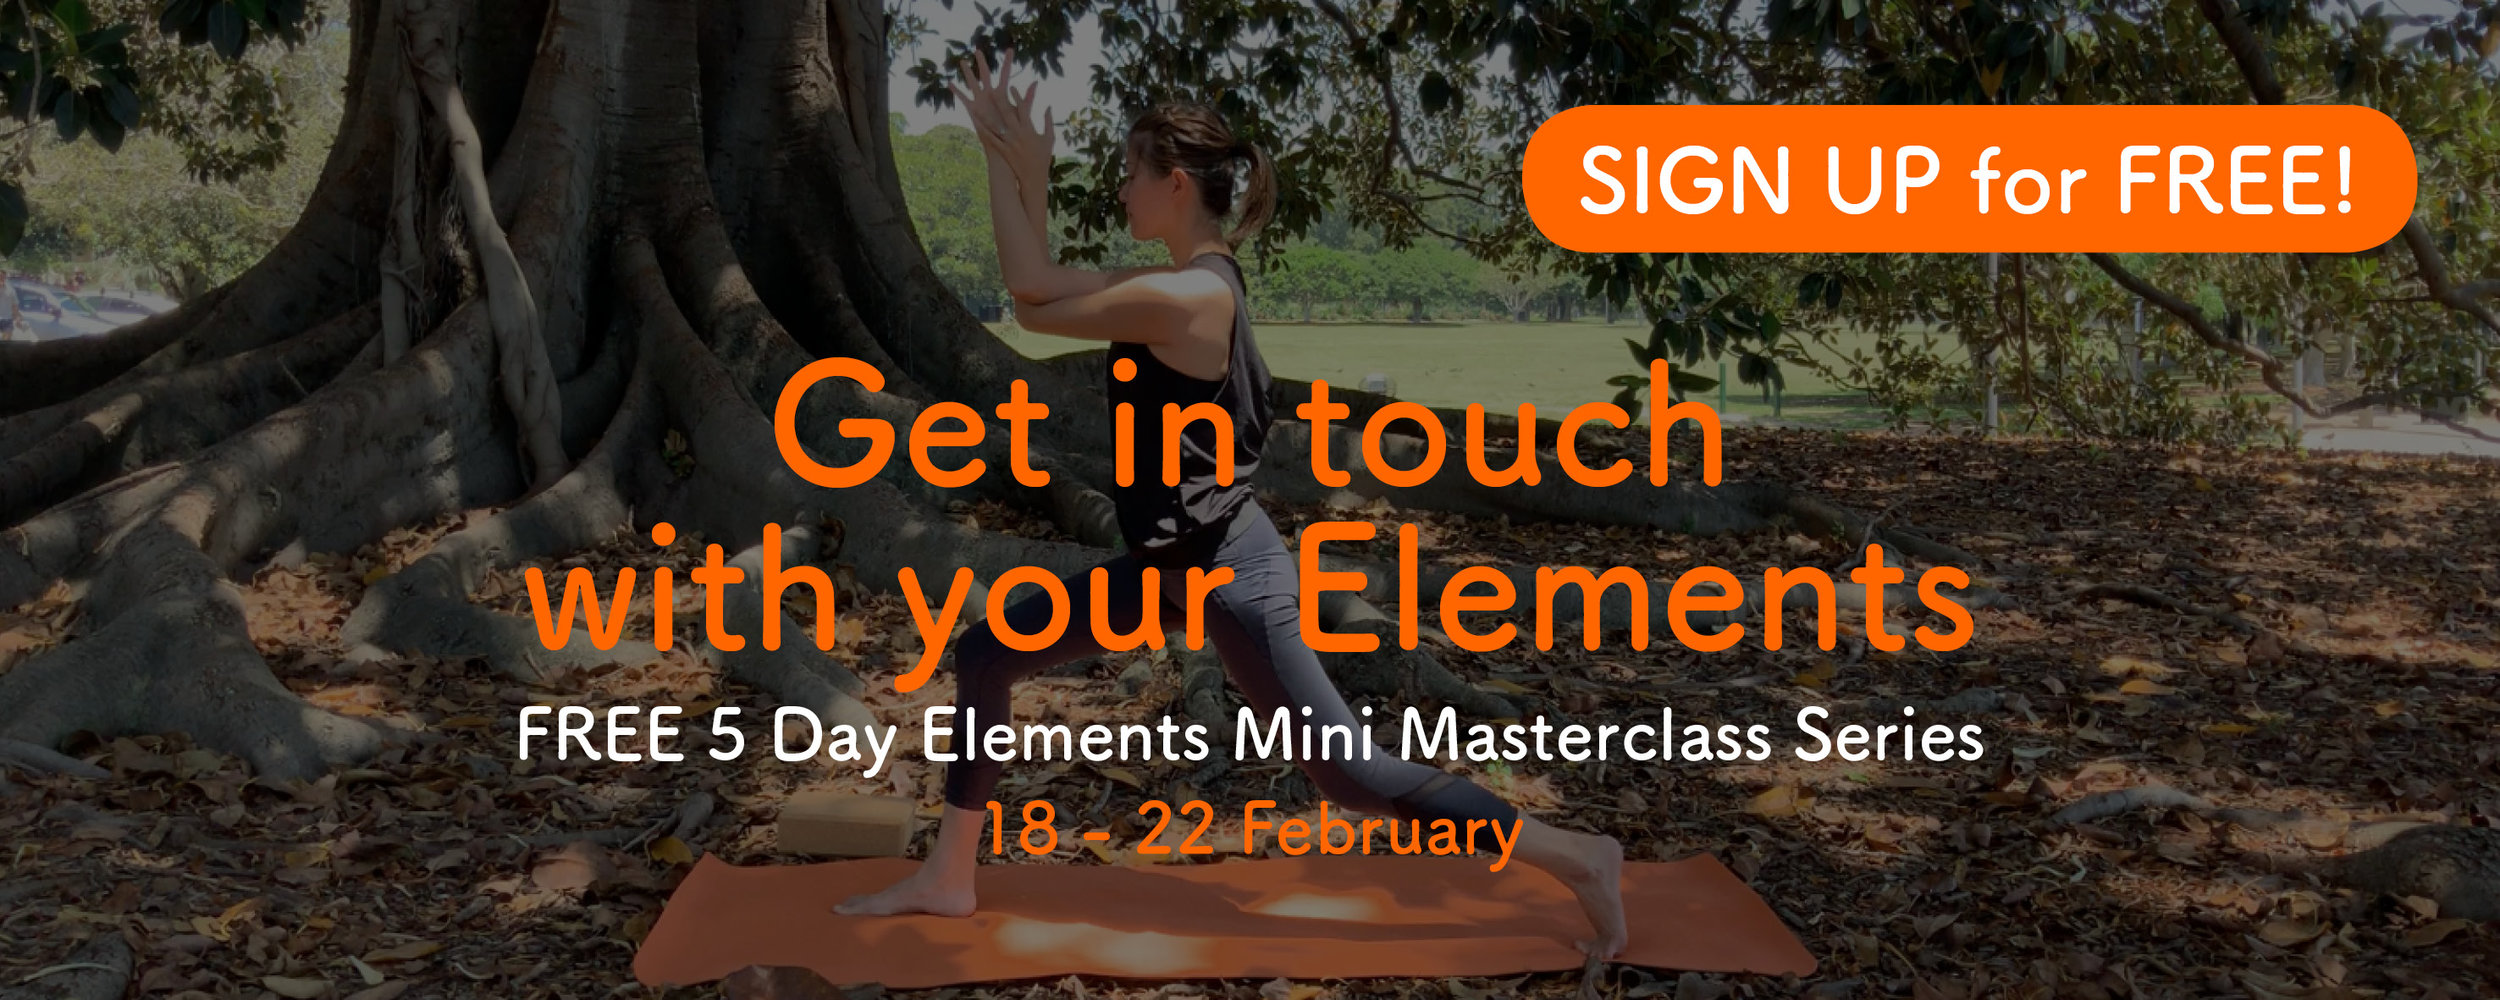 Elements sign up